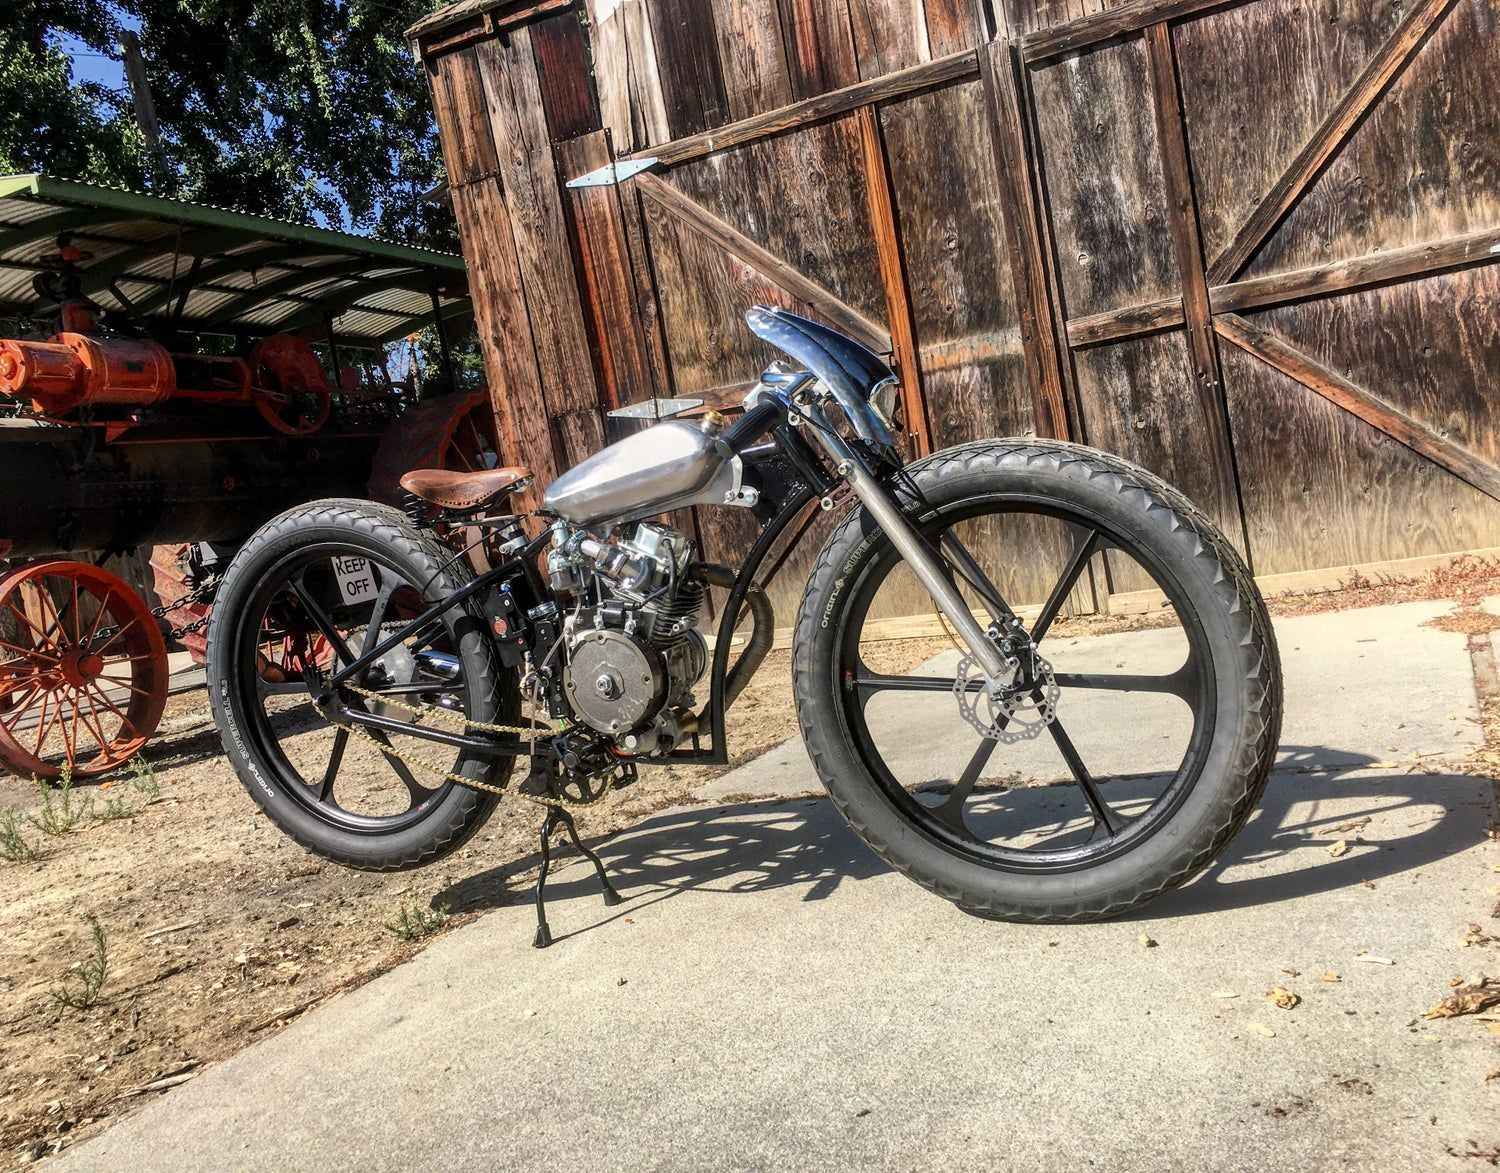 Home | Imperialcycles_sj | Motorised bike, Motorized bicycle